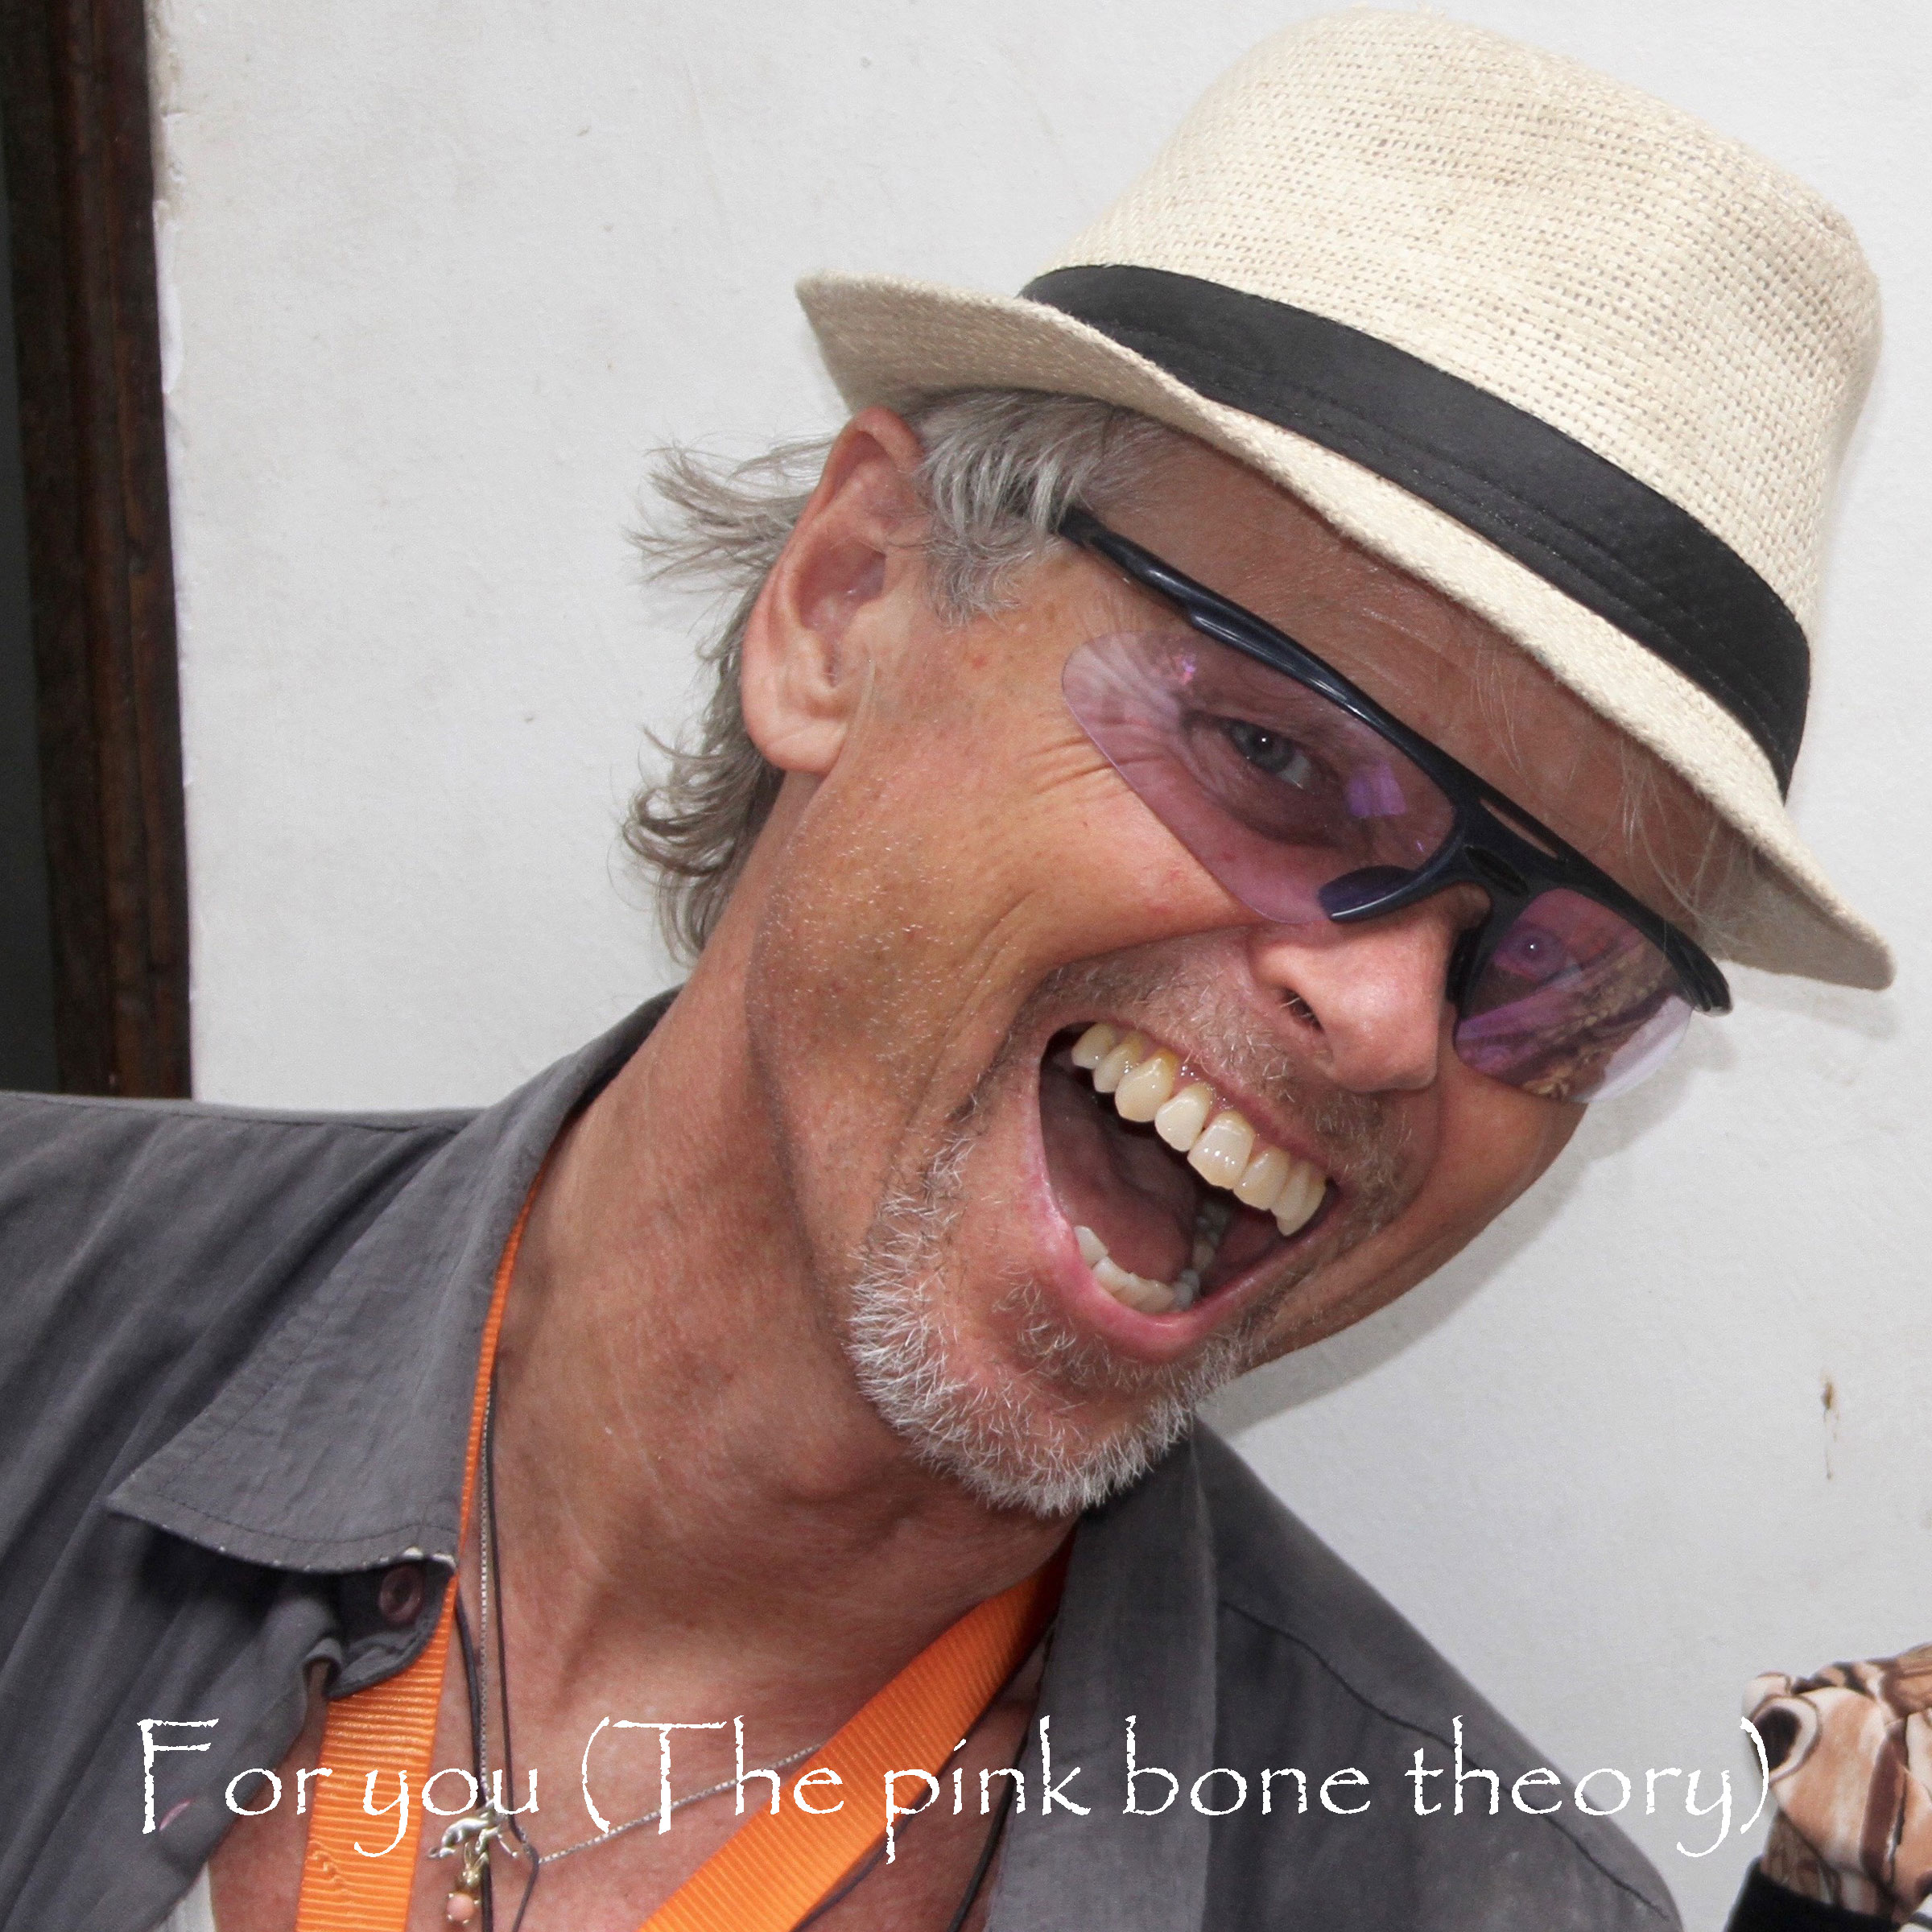 For you (The pink bone theory)